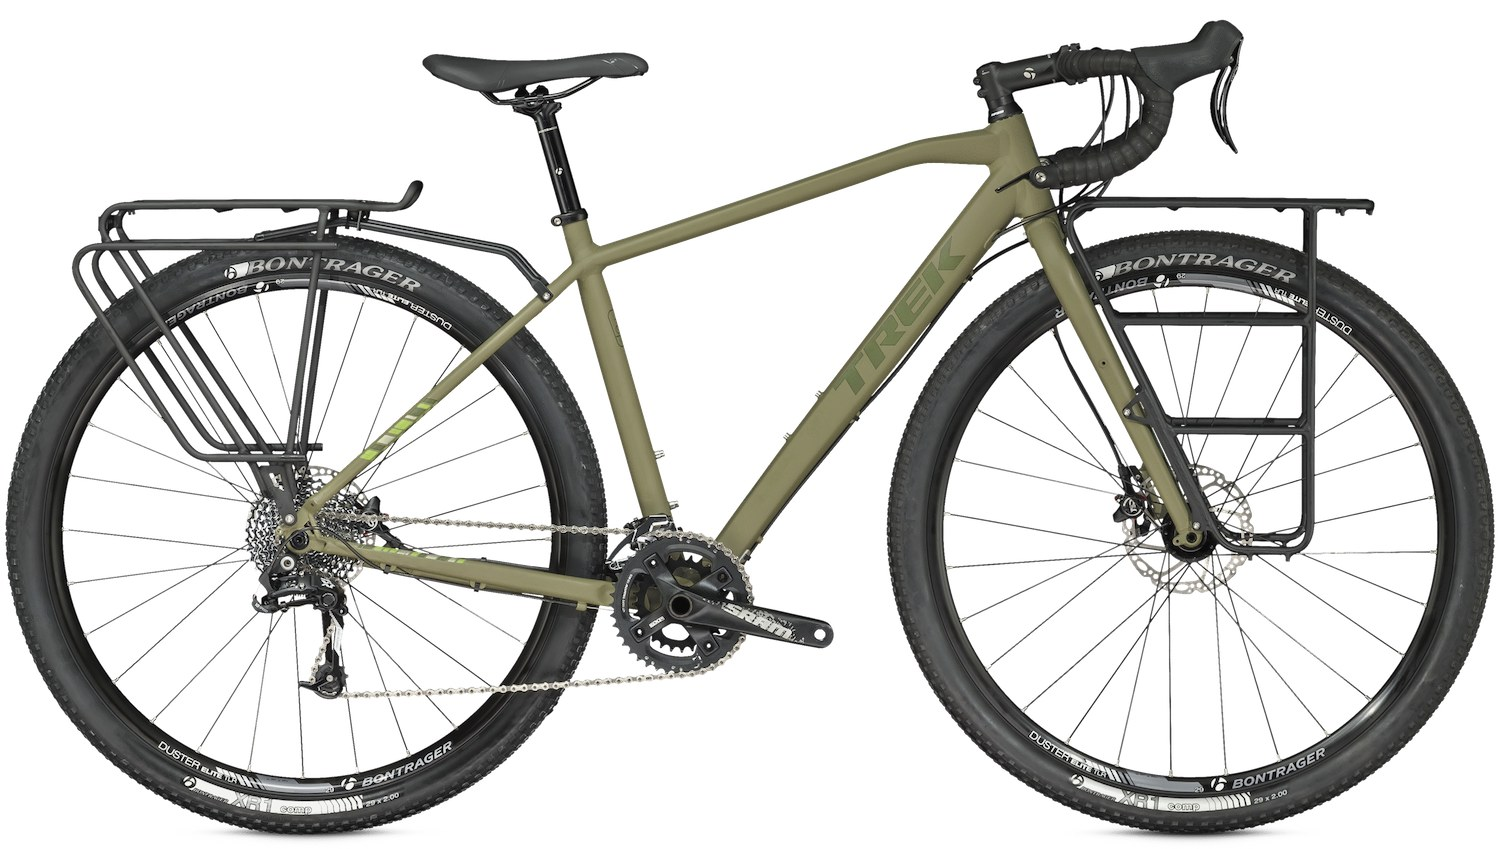 The New 2016 Trek 920, 720, 520 and Crossrip Touring Bikes ...